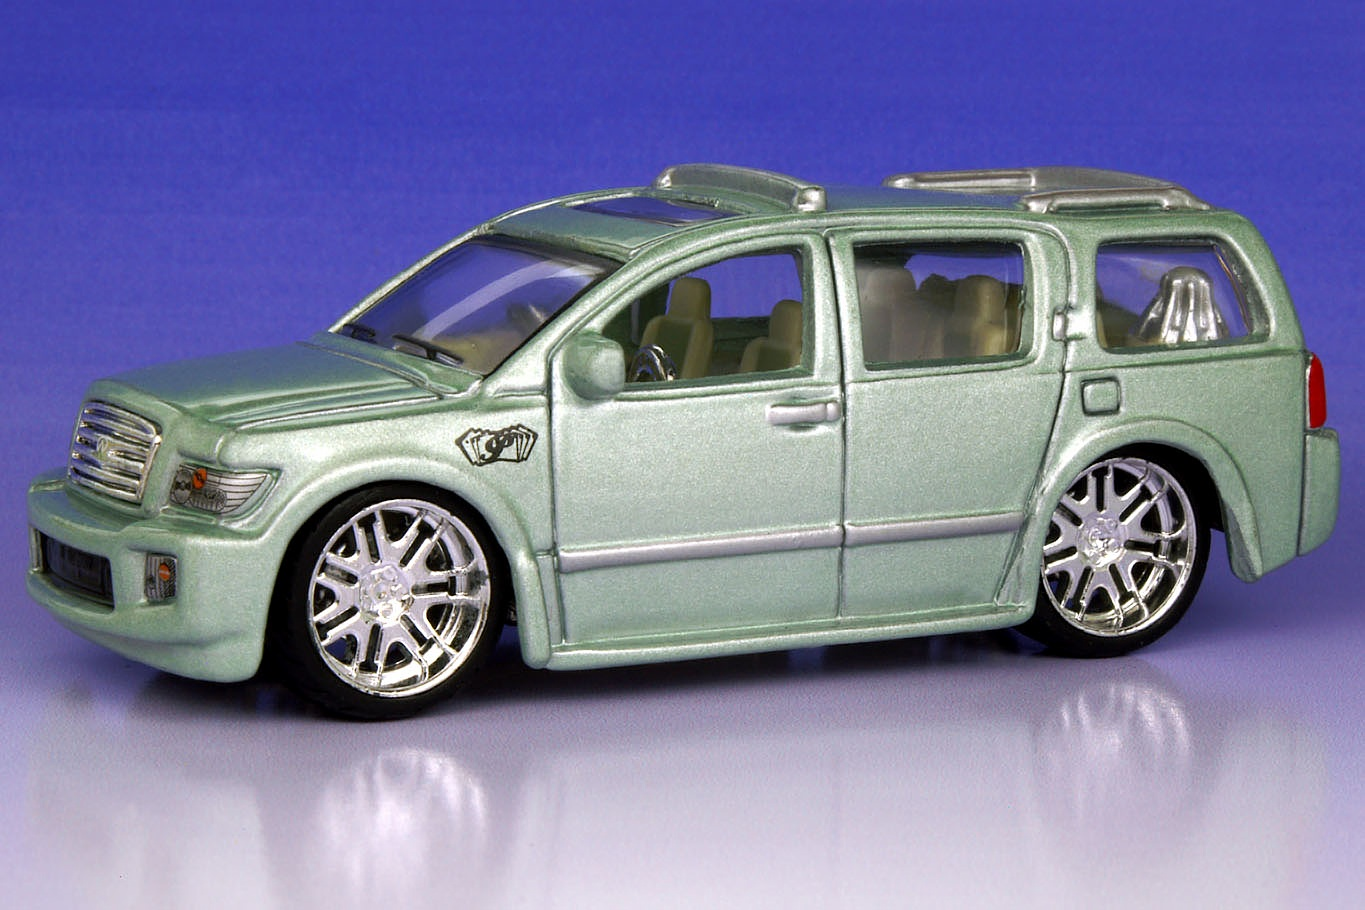 2006 infiniti qx56 custom choice image hd cars wallpaper infiniti qx56 custom shop maisto diecast wiki fandom powered infiniti qx56 9844df vanachro choice image vanachro Choice Image